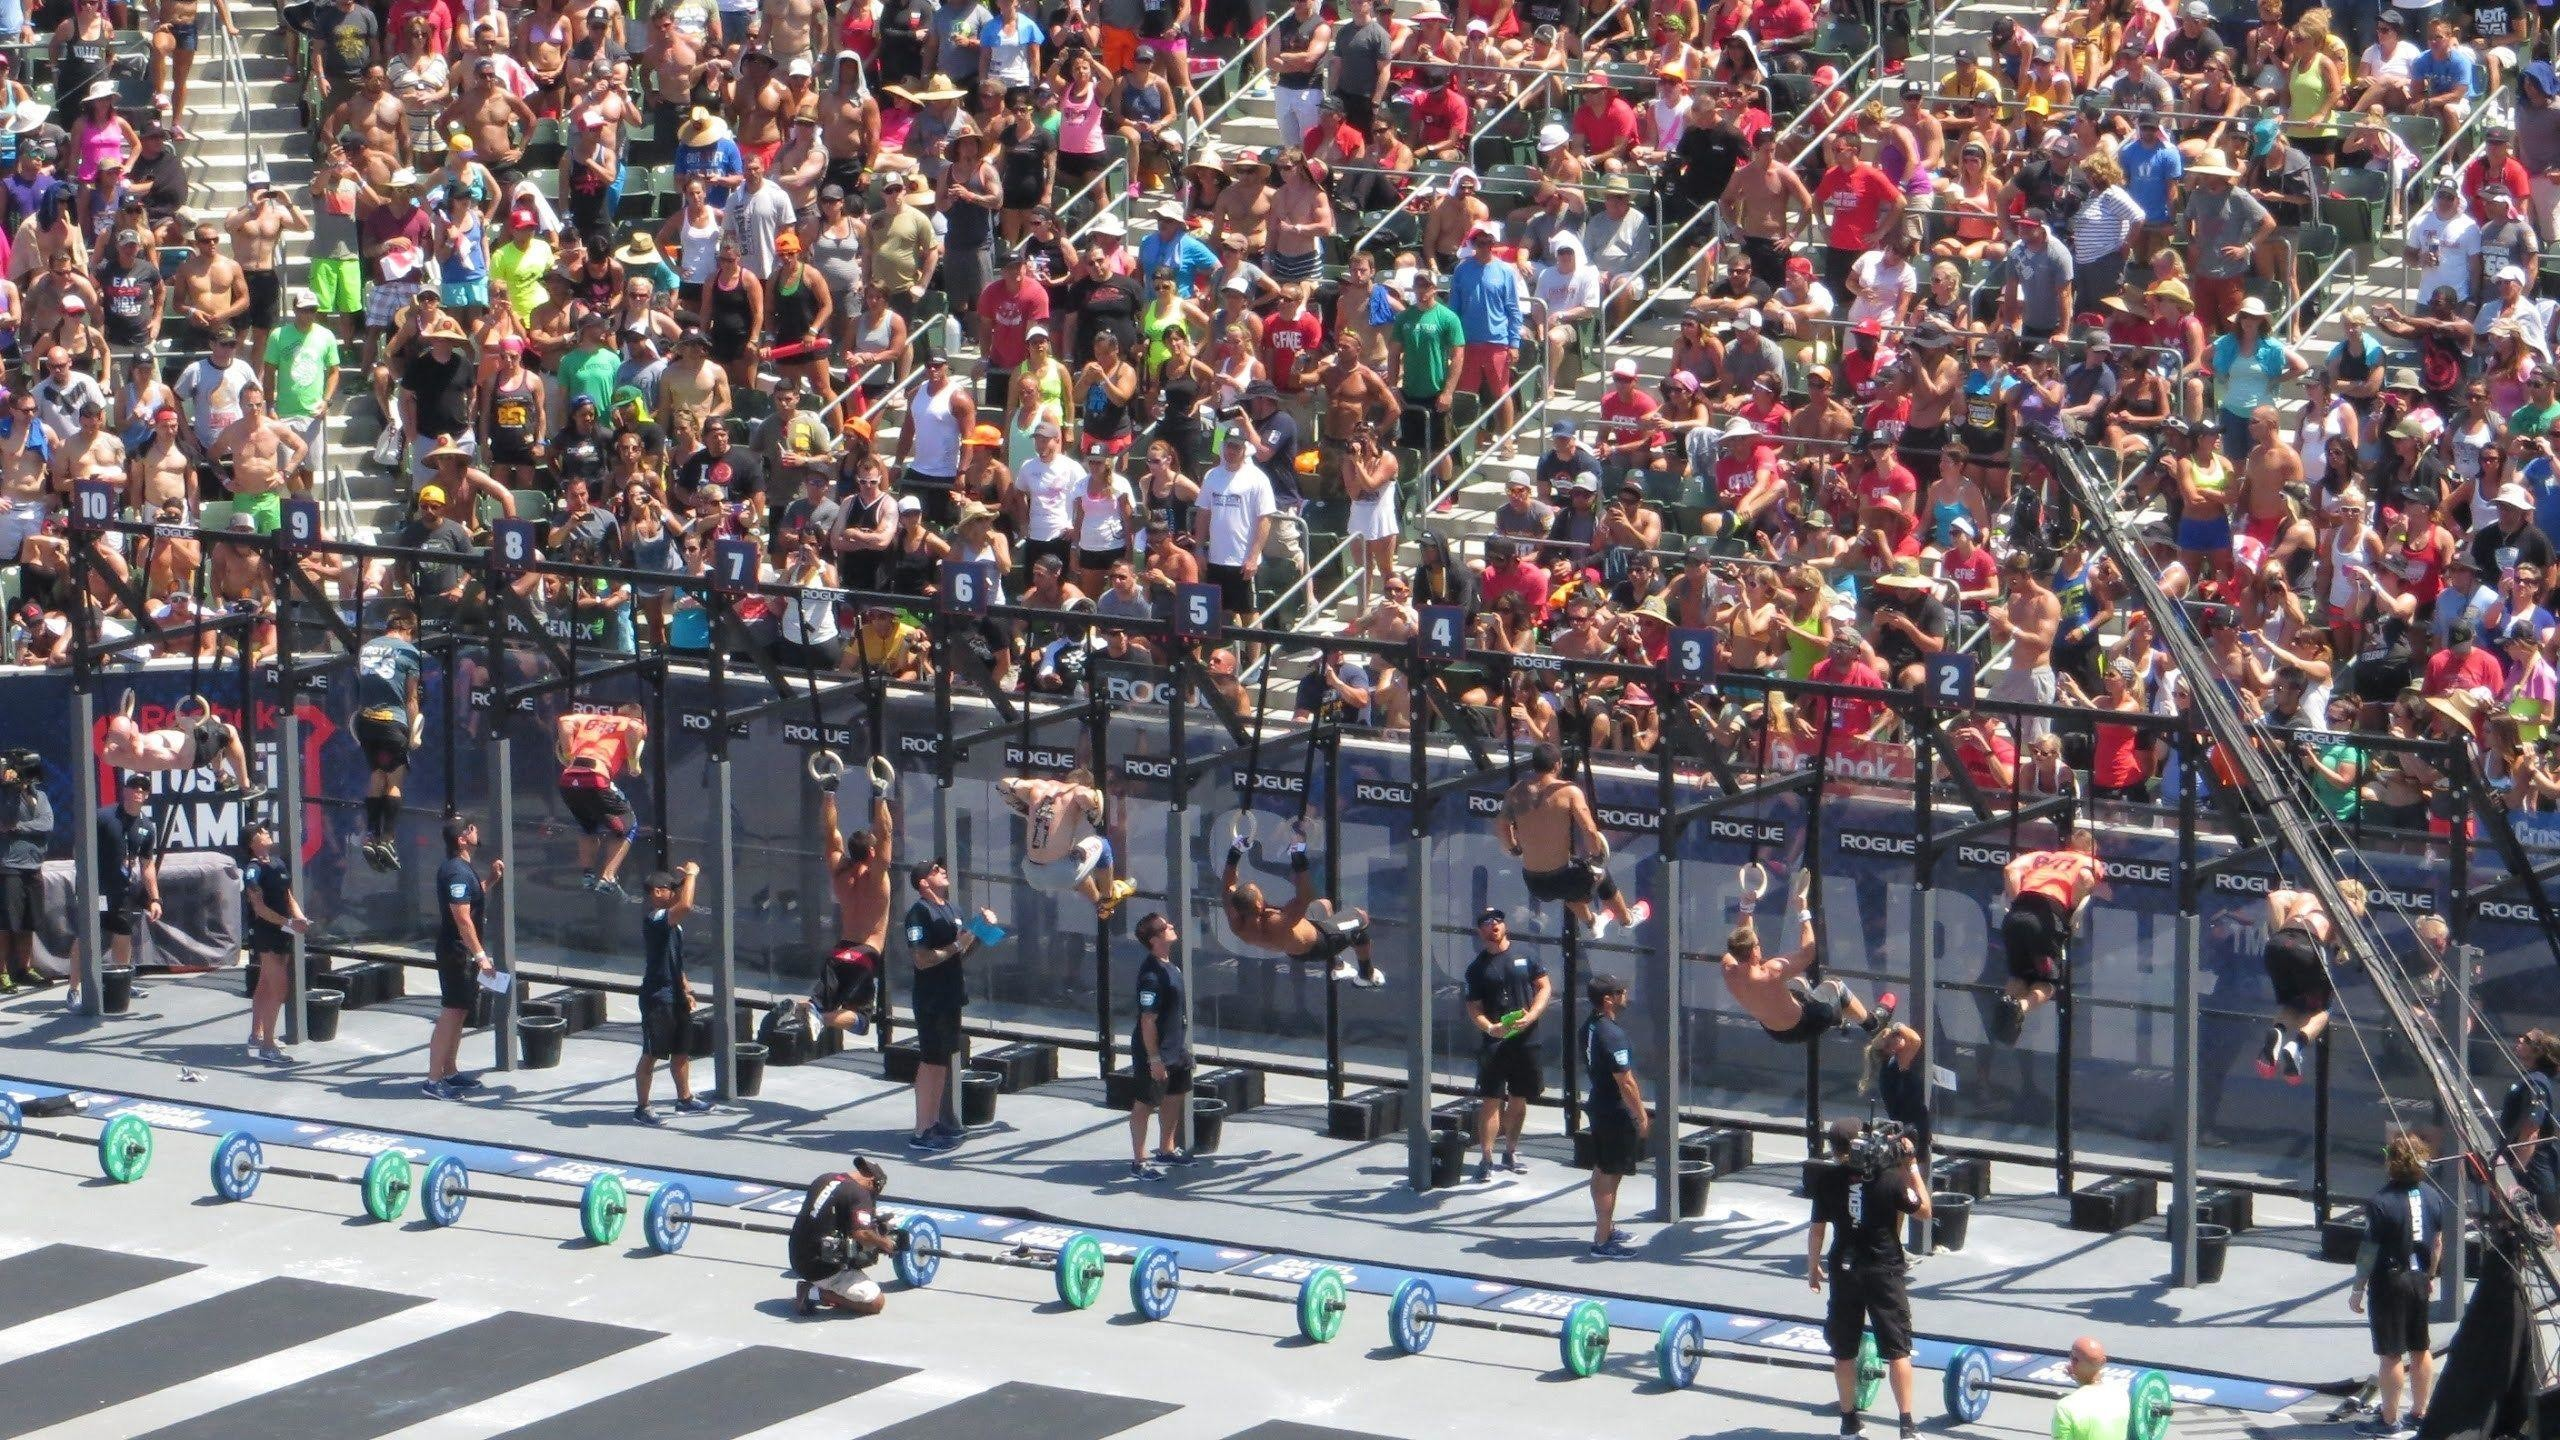 2560x1440 Crossfit Games Wallpaper Hd A Wallppapers Gallery Scaricare Reebok